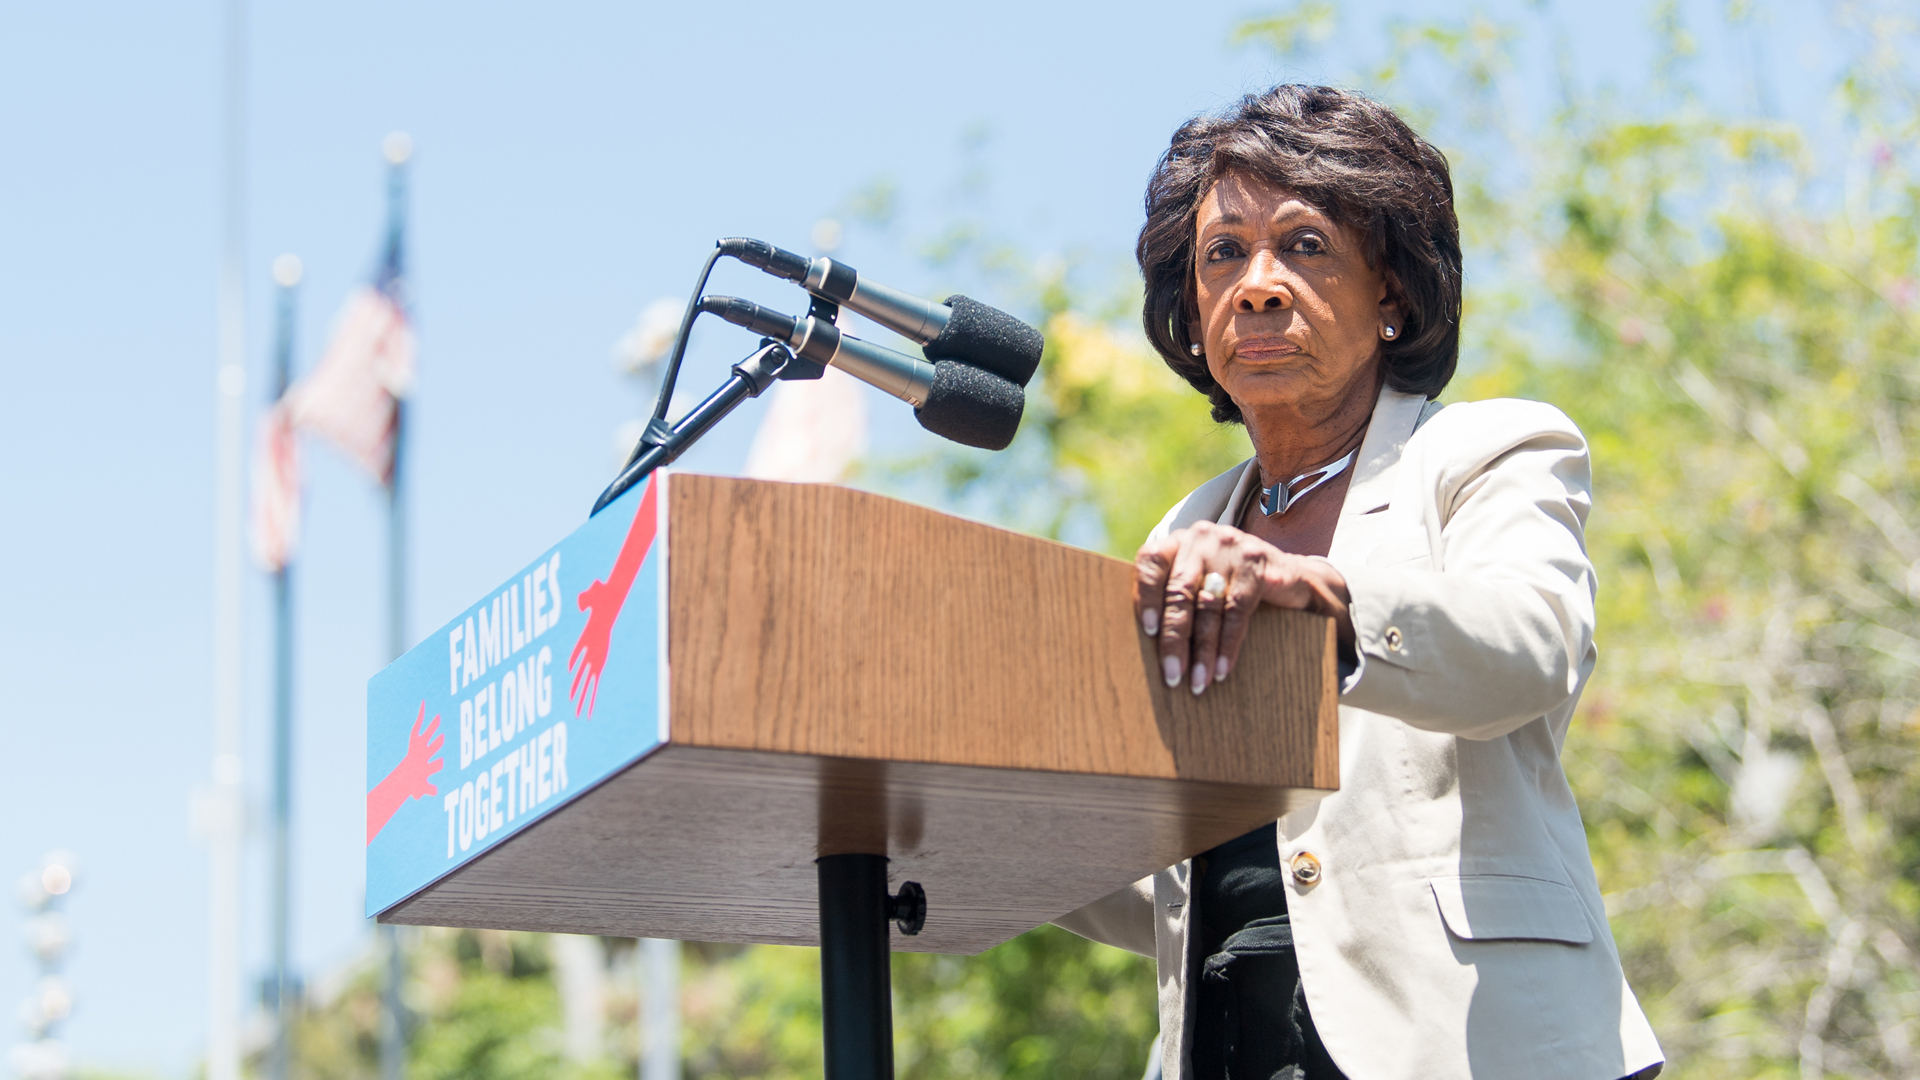 Rep. Maxine Waters speaks at Los Angeles City Hall on June 30, 2018. (Credit: Emma McIntyre/Getty Images for Families Belong Together LA)